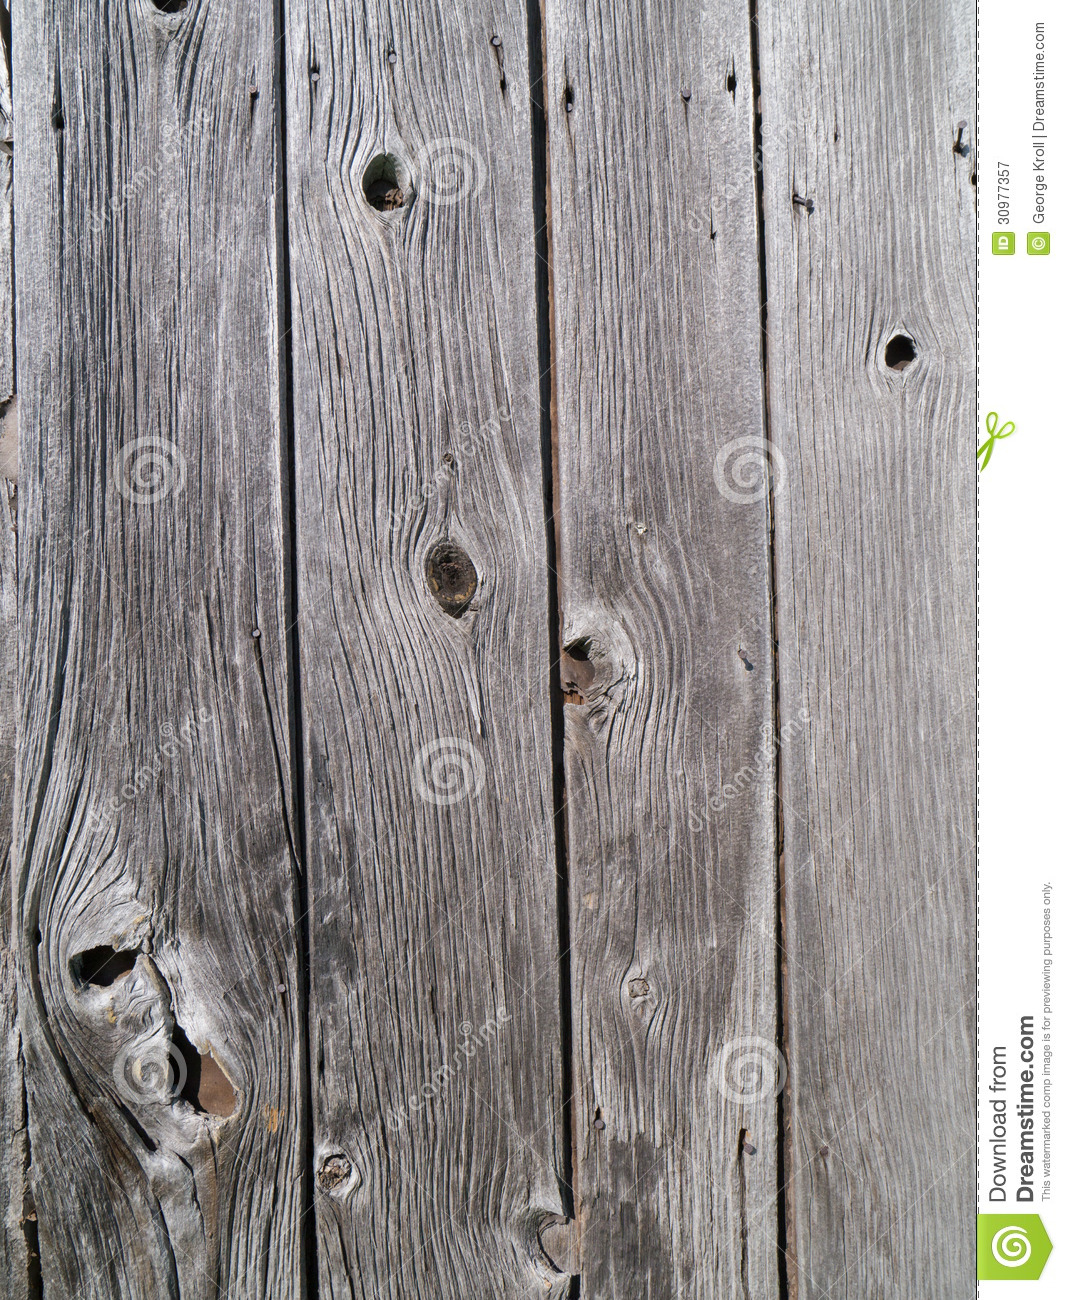 Vertical Barnwood Boards Stock Image Image Of Grey Worn